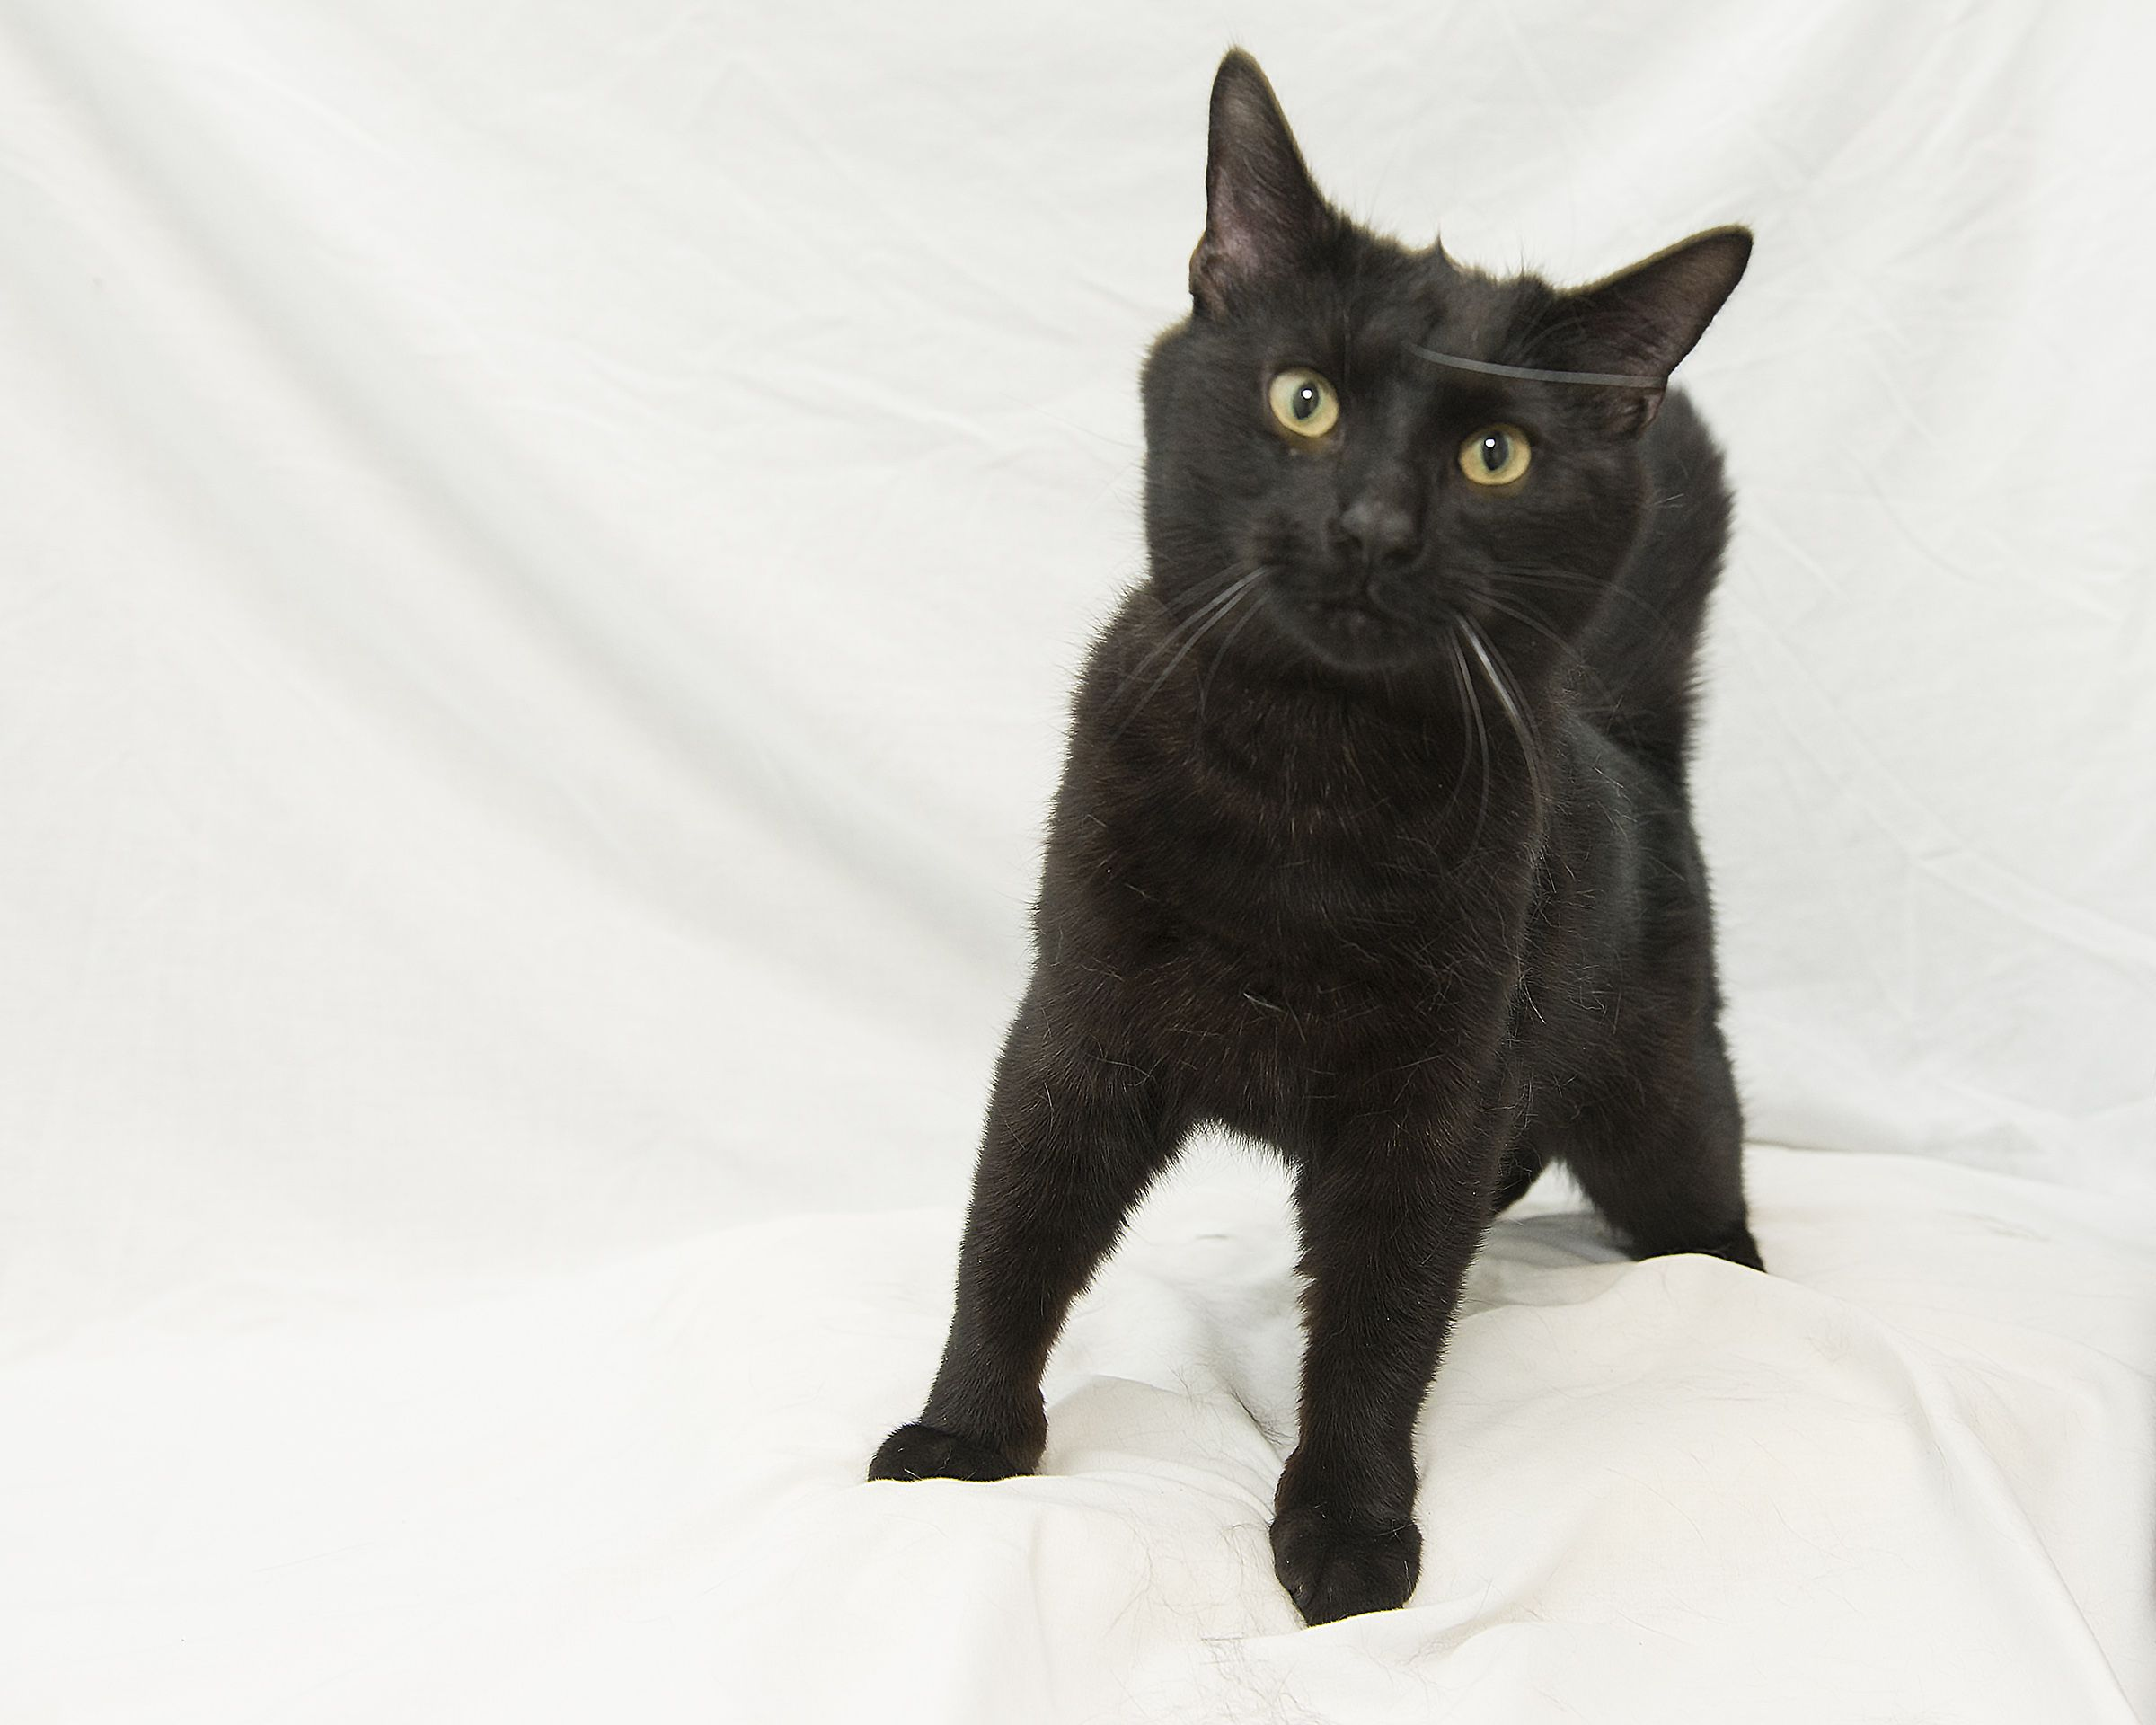 Jasper Is So Excited To Have Gotten A Foreverhome Opt2adopt Livessaved Kittylove Humane Society Kitty Animals